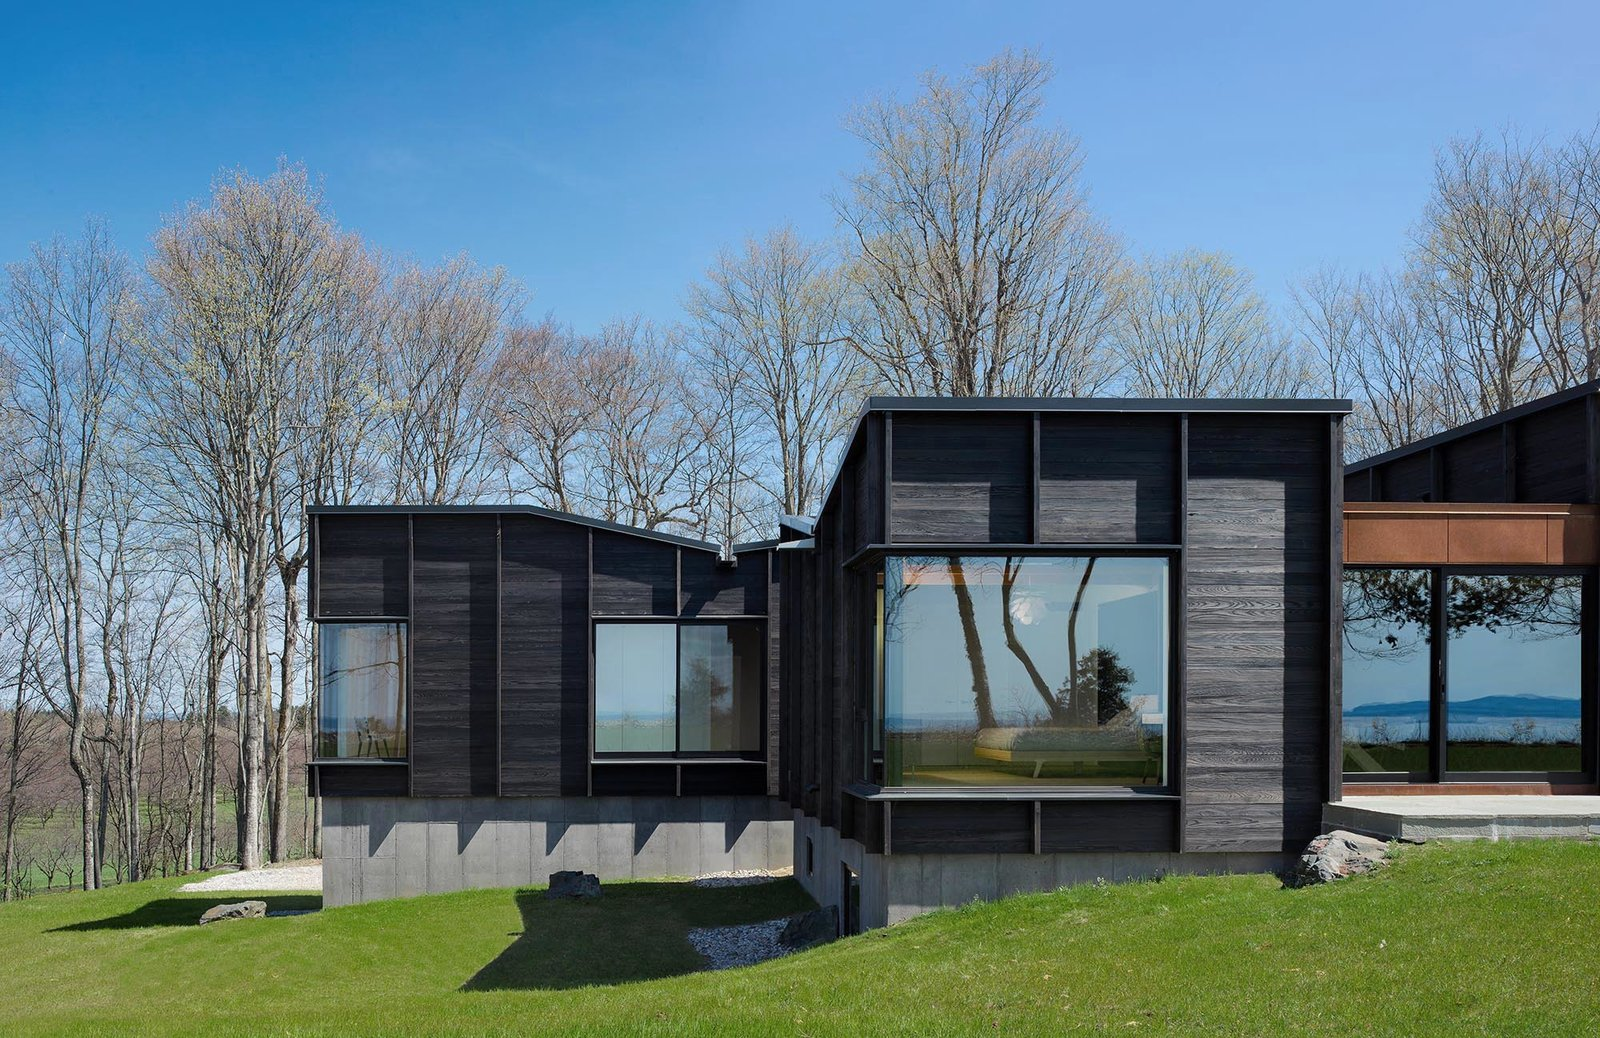 Side Yard, Grass, Trees, Exterior, House Building Type, and Wood Siding Material The two sleeping quarters contain more solid facade than glass to provide adequate privacy.  Best Photos from 1